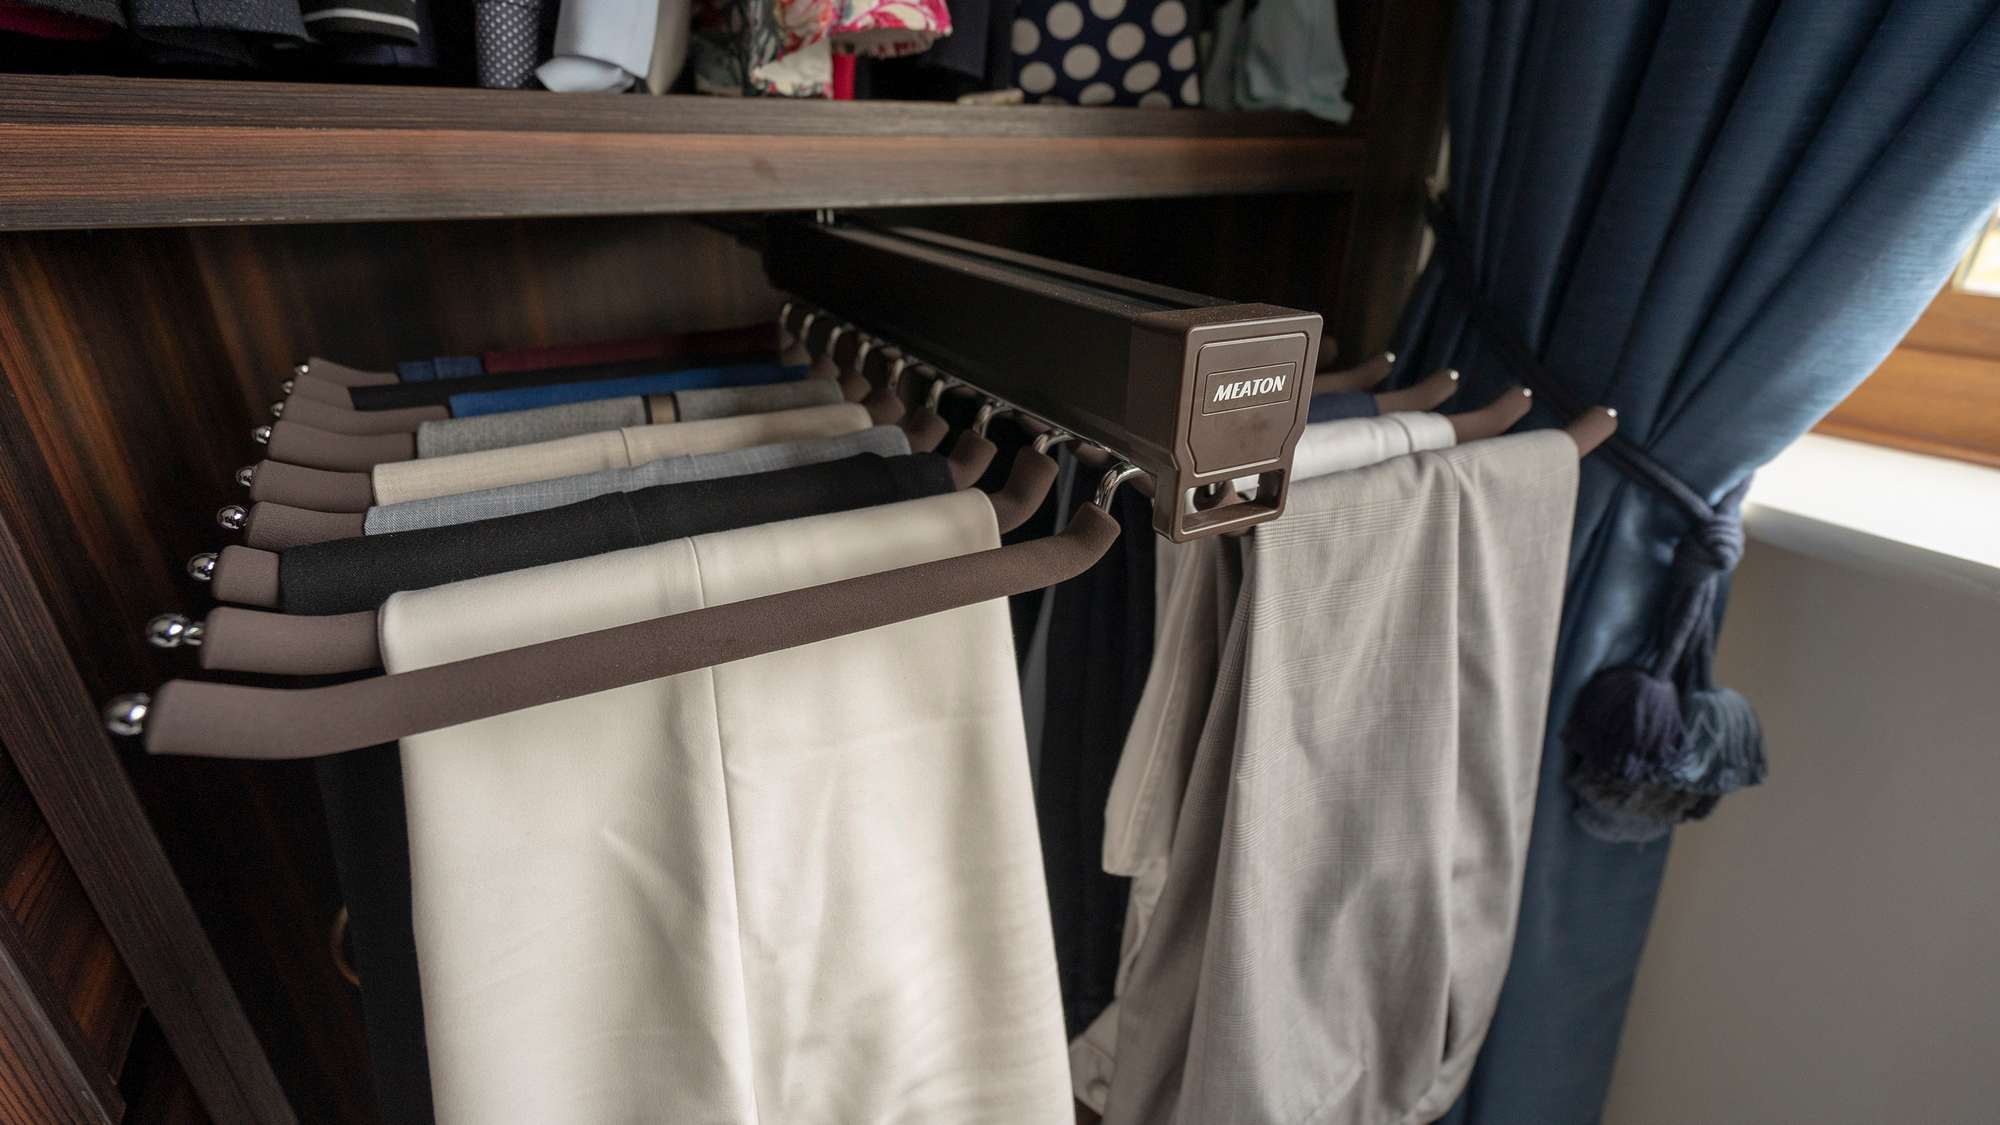 Close up shot of the pull out trouser racks.